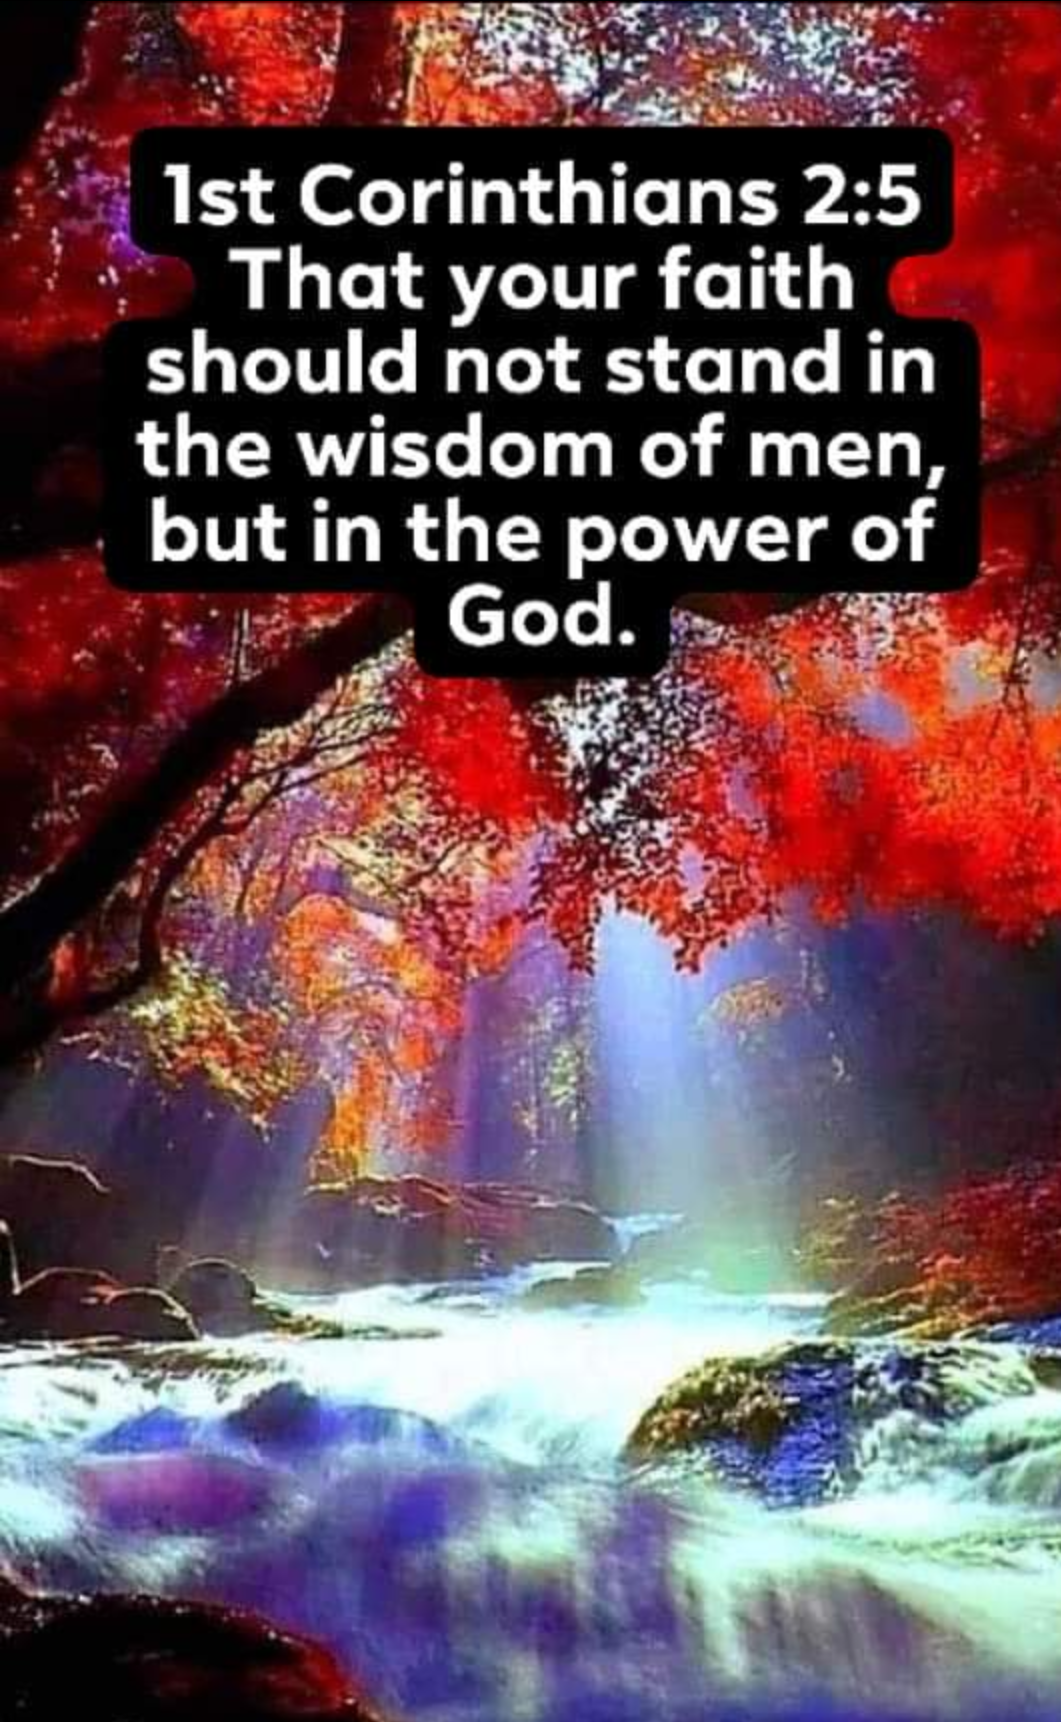 REACH OUT FOR THE POWER OF HOLY GOD!: